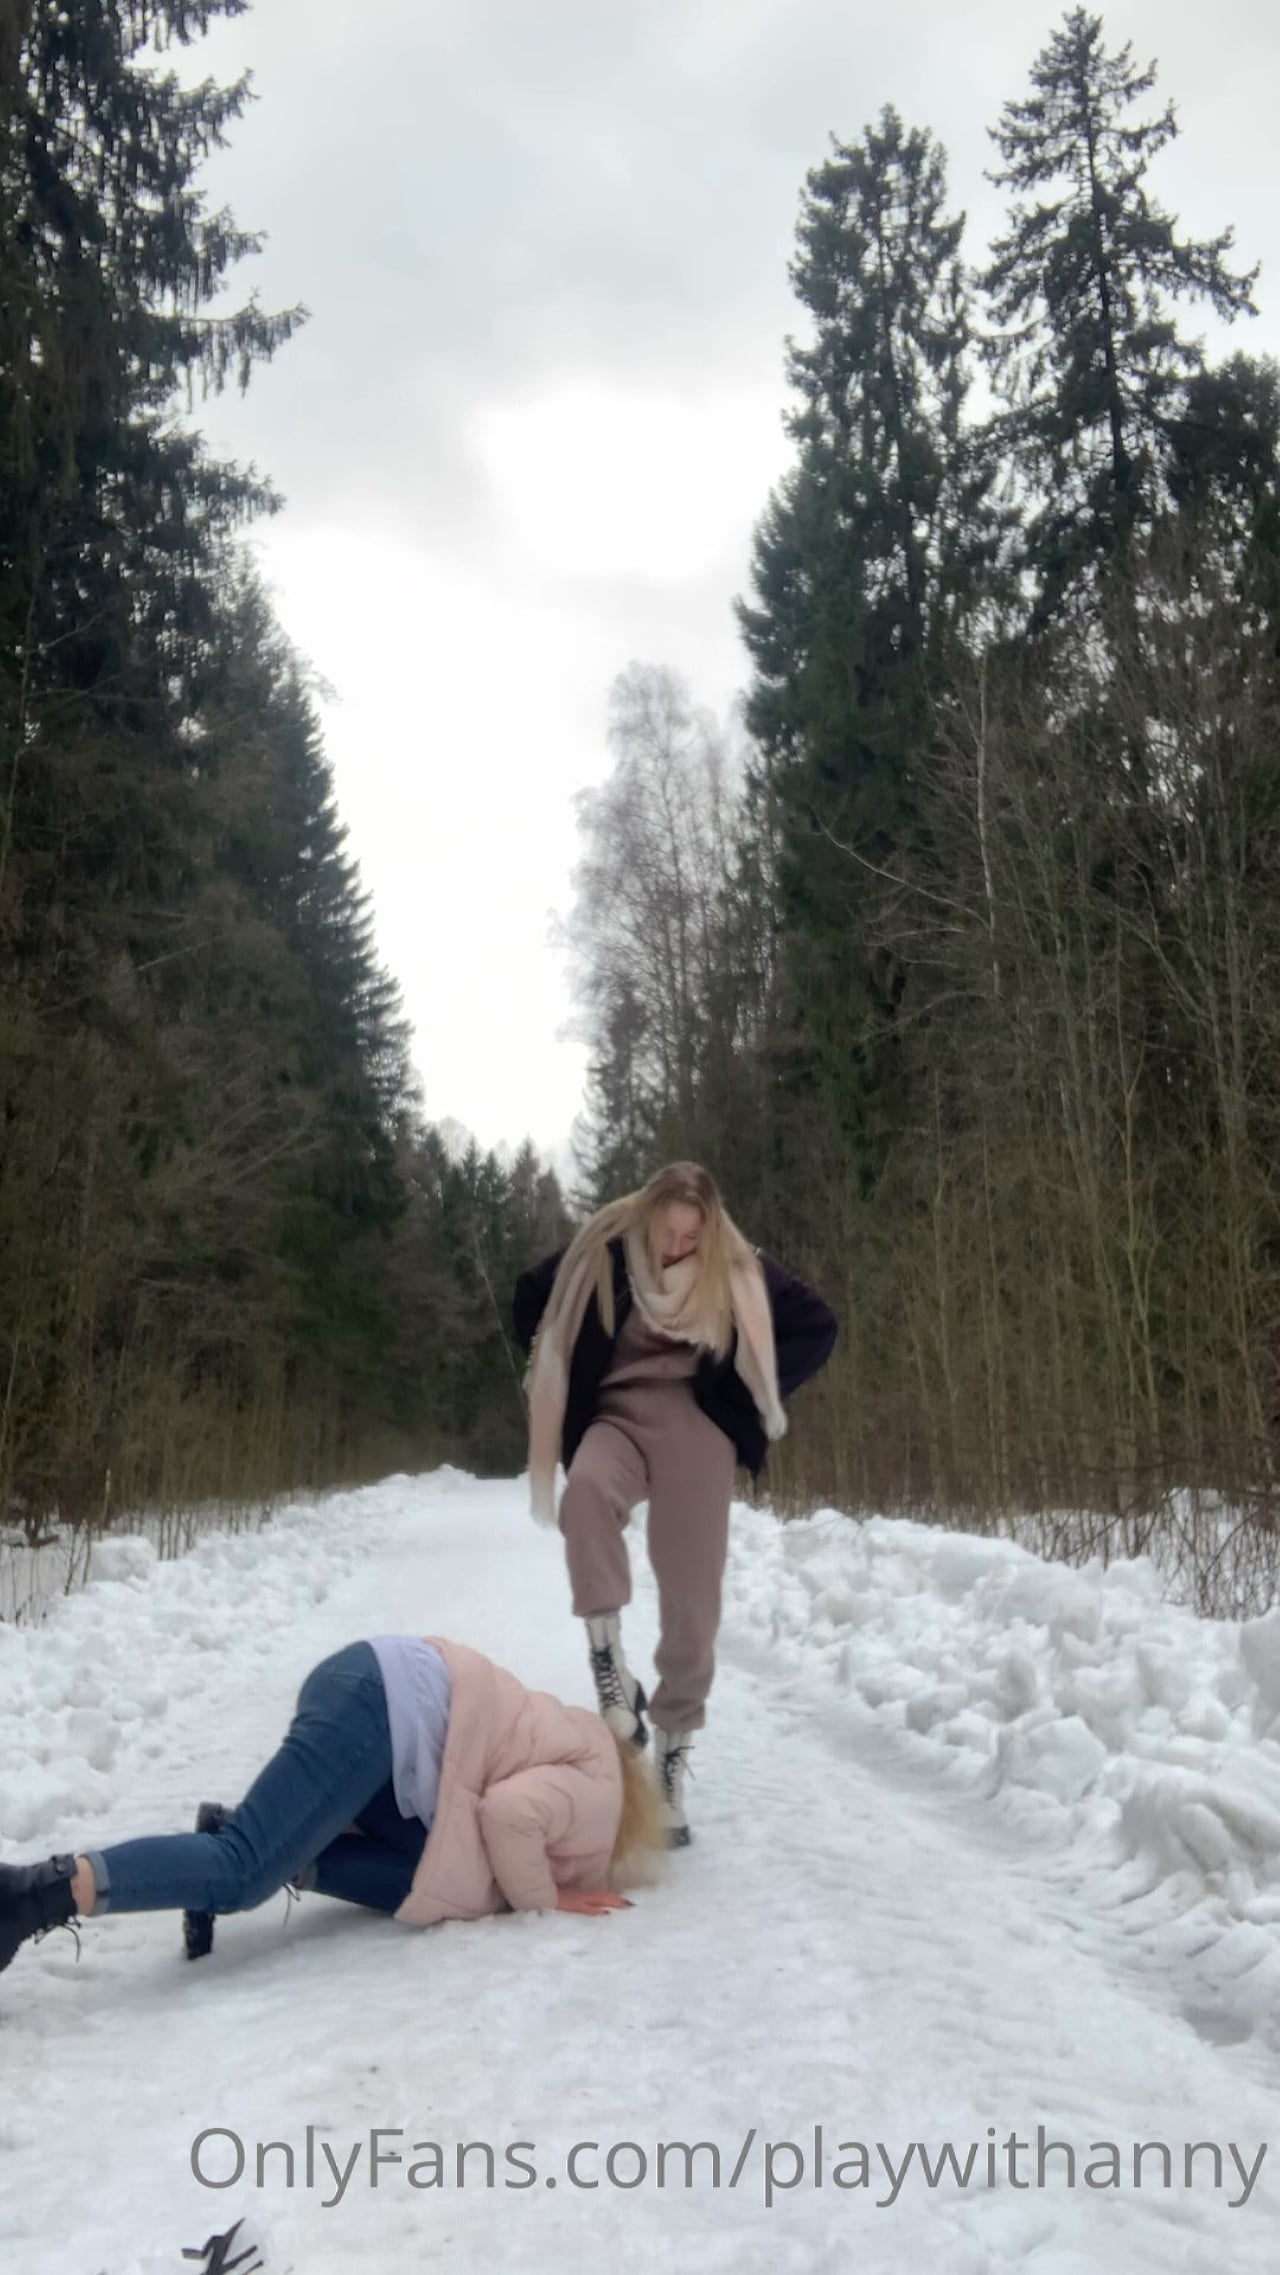 Goddess Anny In Scene: First She Kisses The Snow On Which I Walk, And Then My Shoes - PLAY WITH ANNY - FULL HD/1920p/MP4